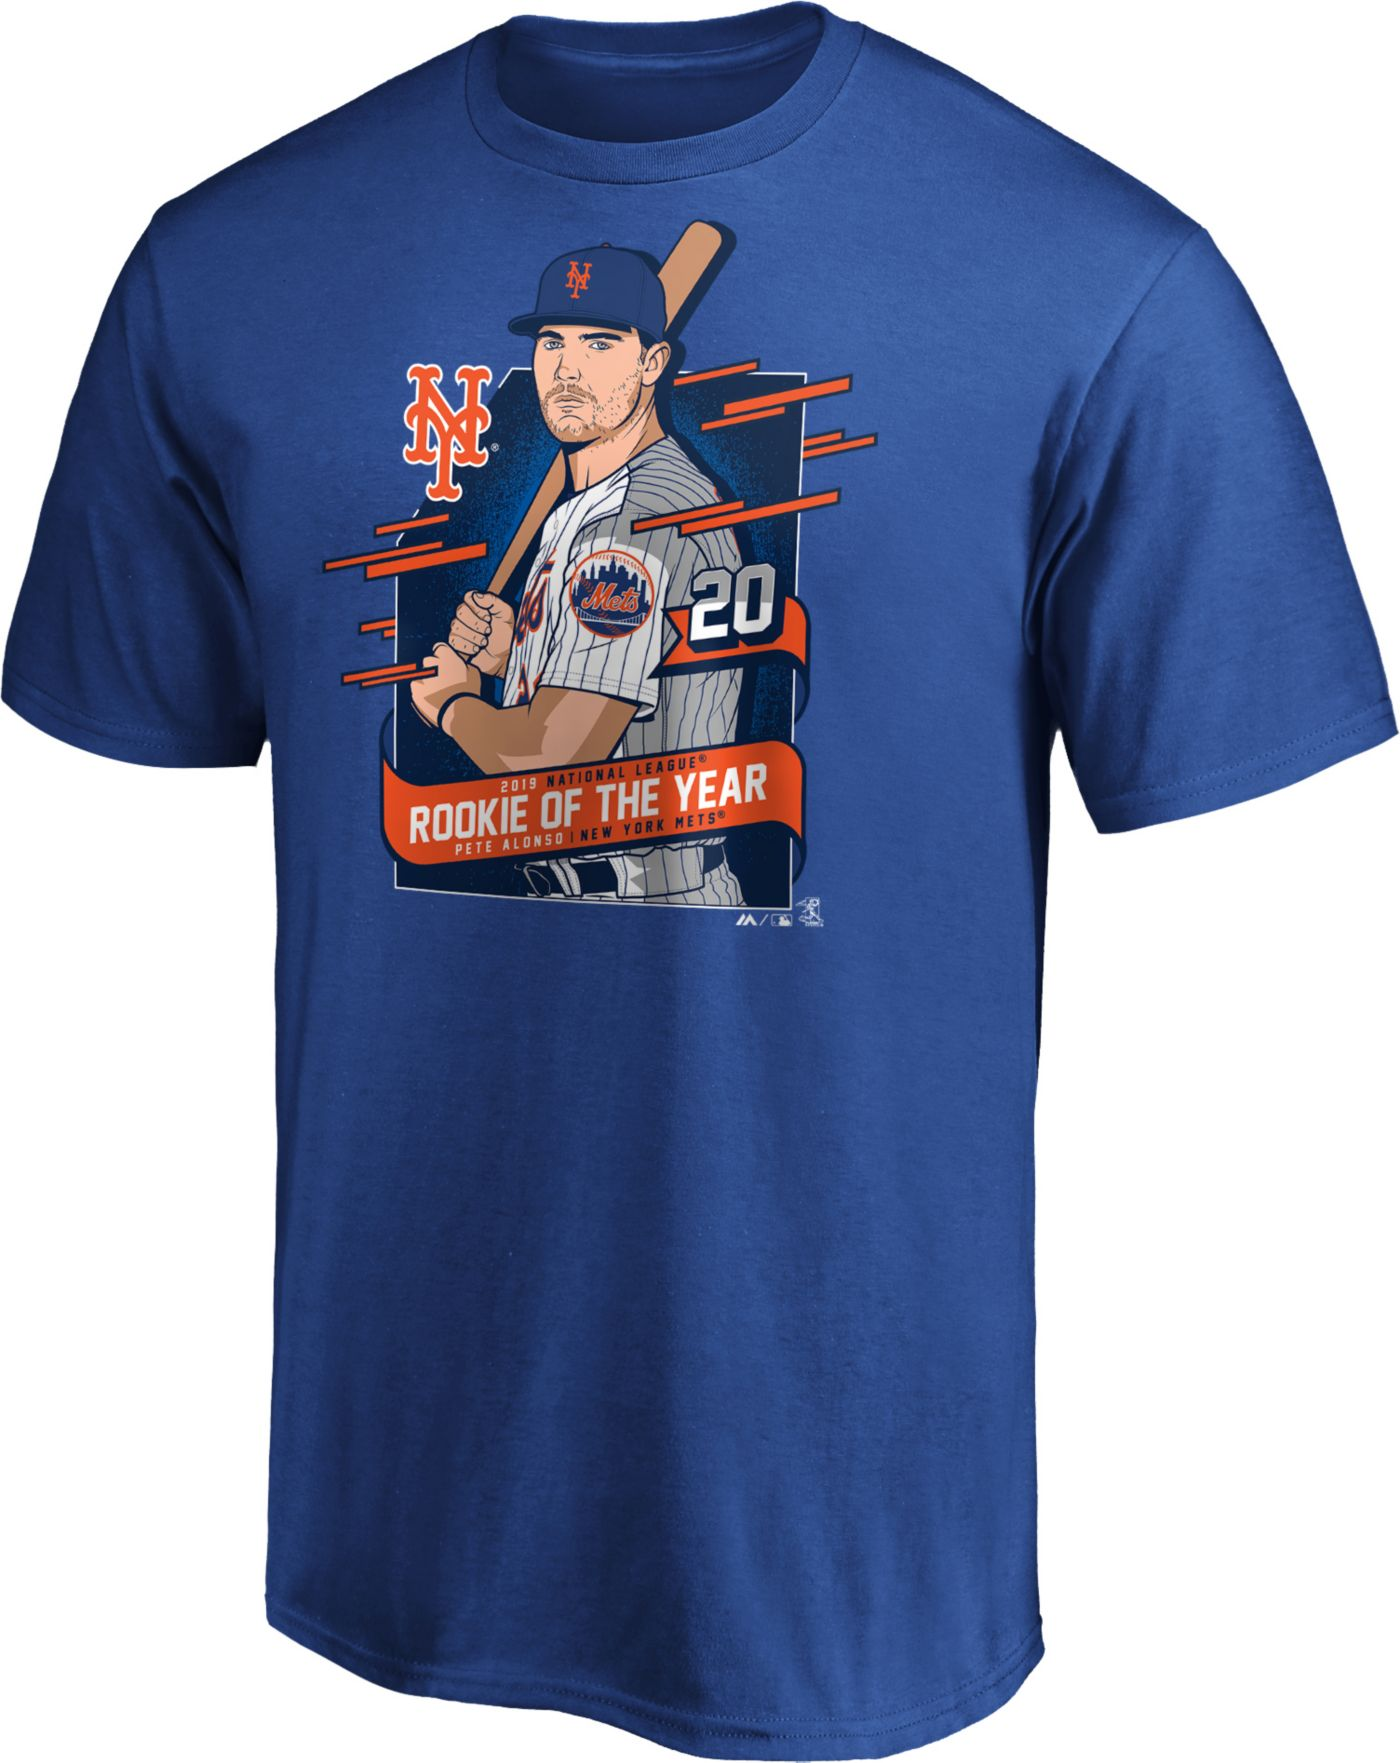 Majestic Men's New York Mets Pete Alonso Navy 2019 Rookie of the Year T-Shirt